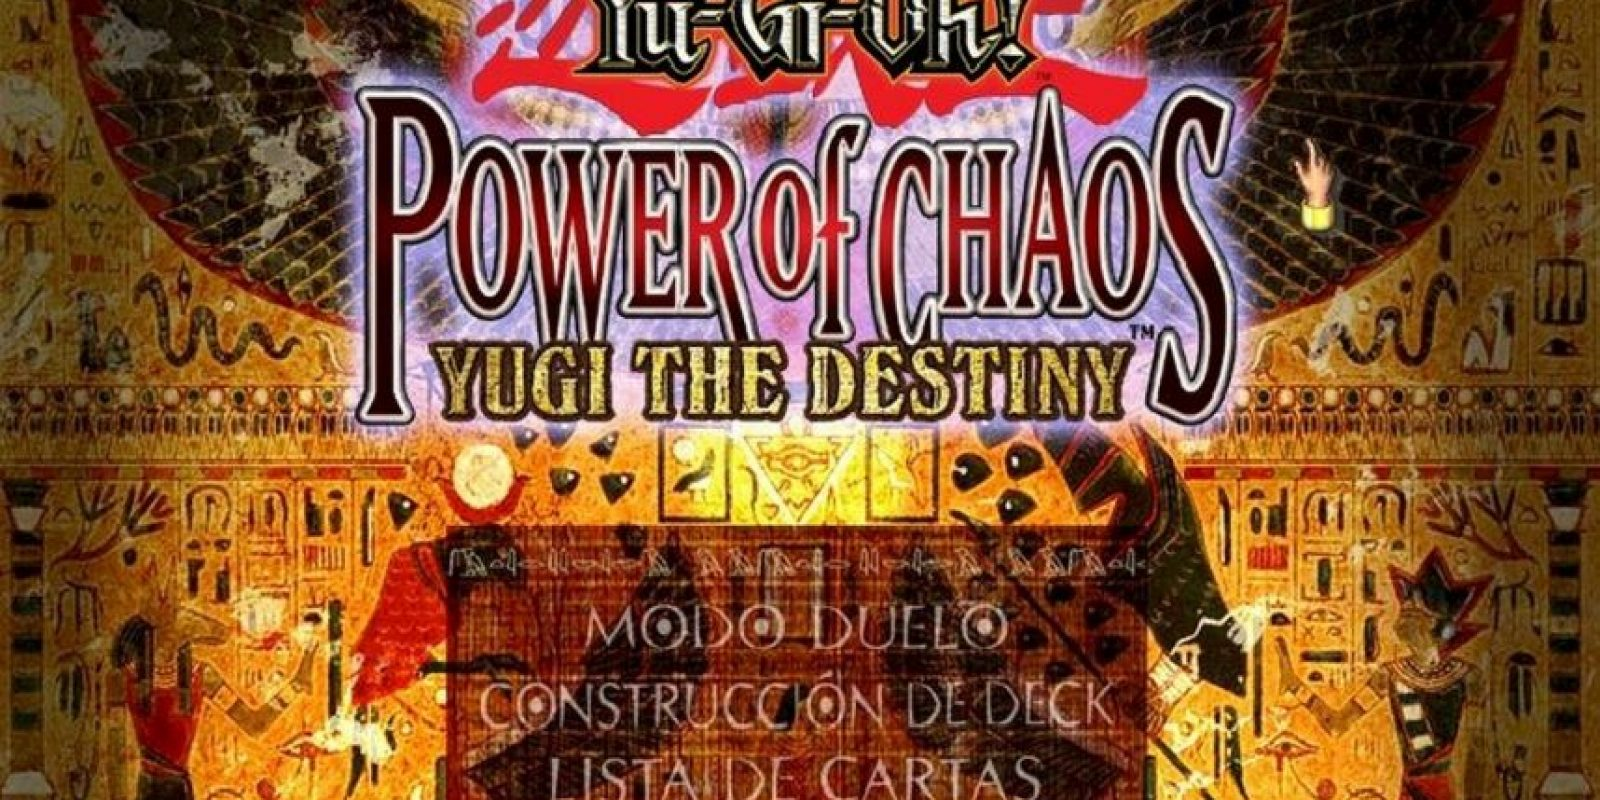 Yu-Gi-Oh! Power of Chaos: Yugi the Destiny (2004). Foto: Konami